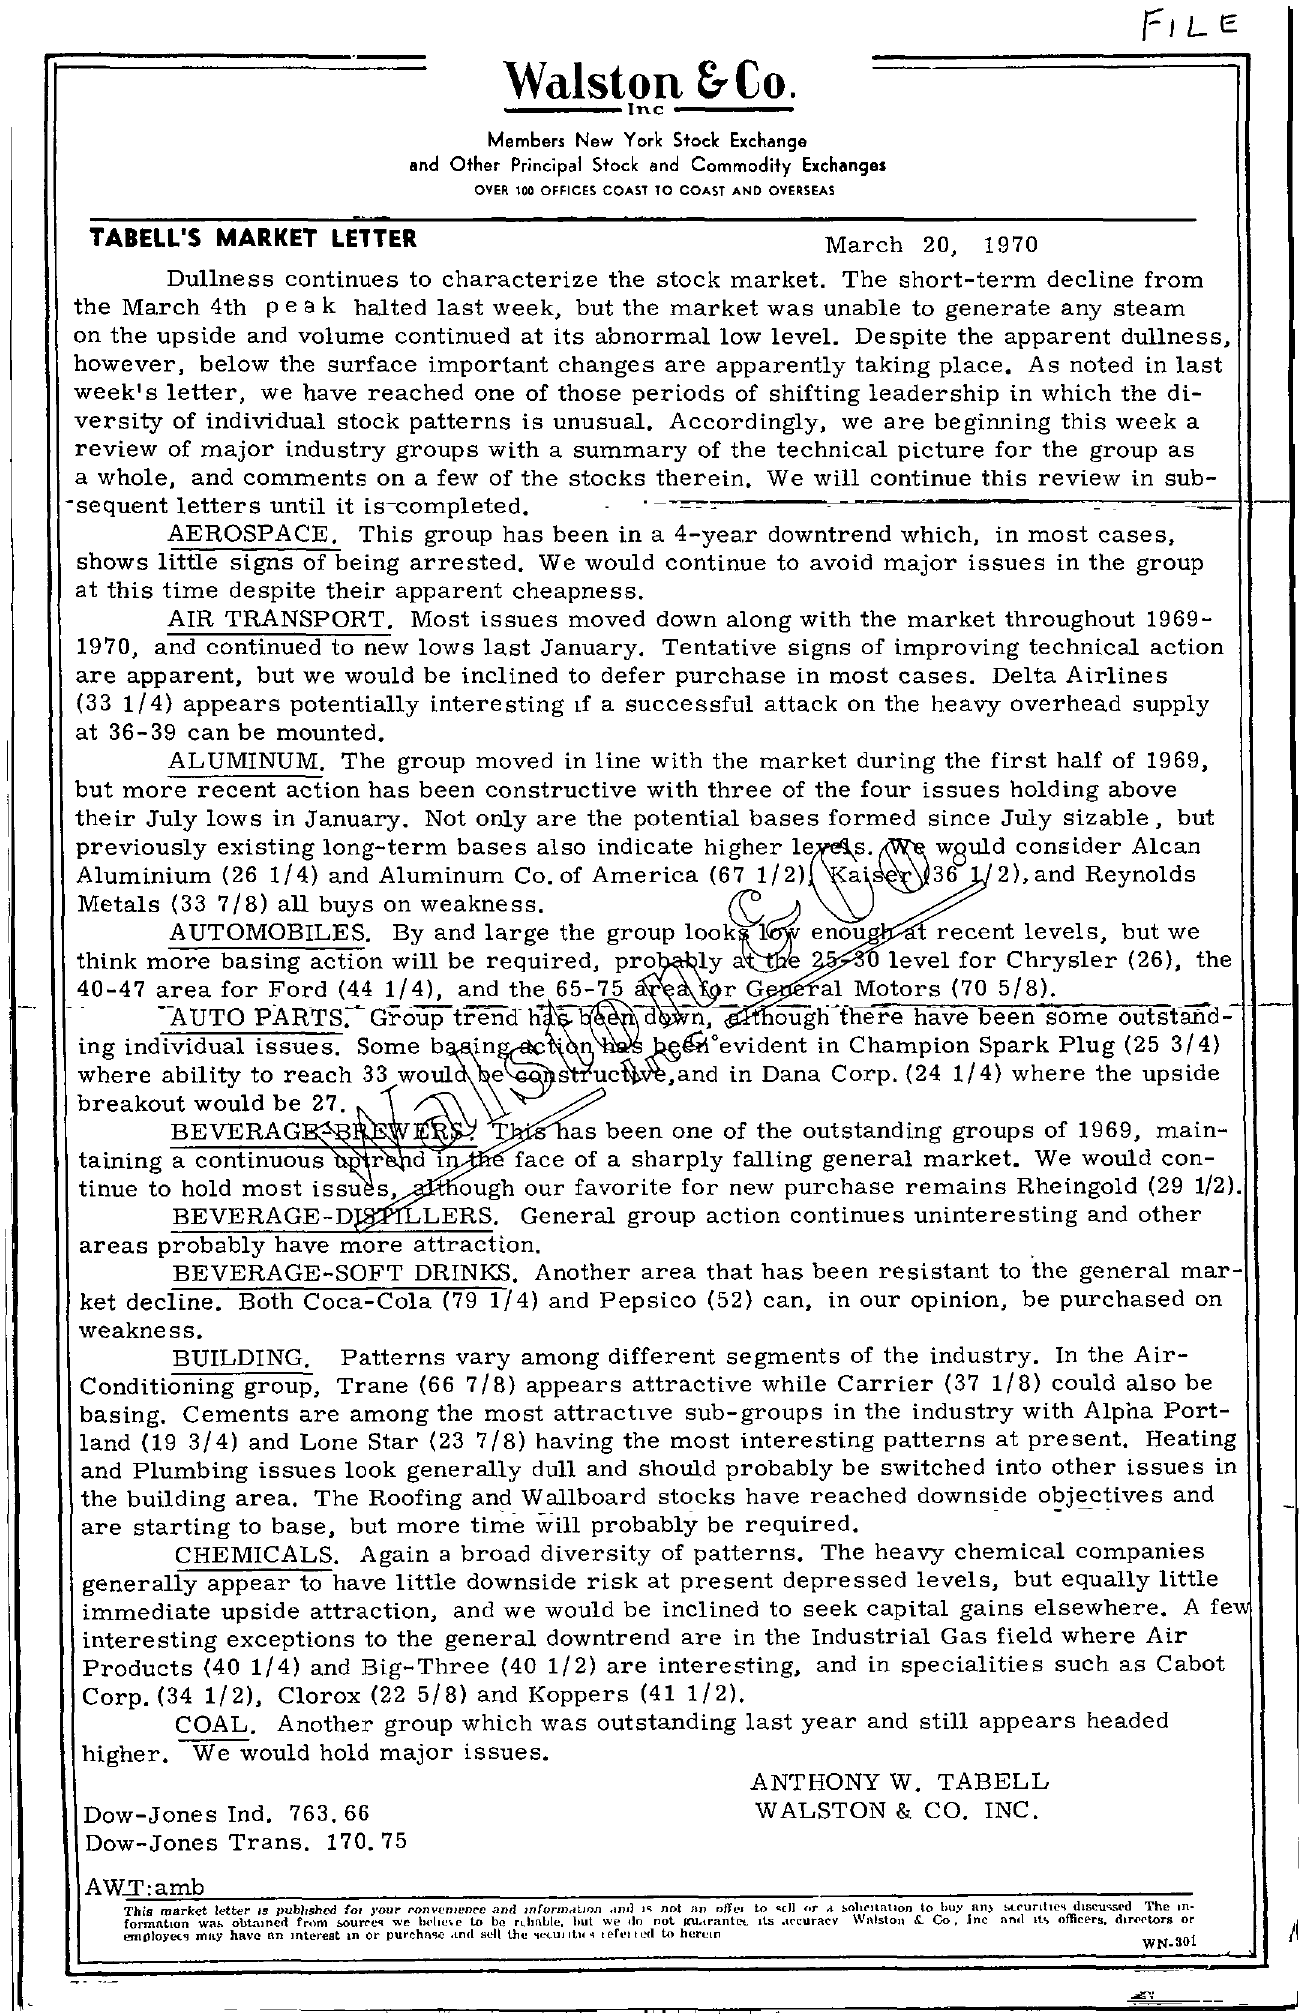 Tabell's Market Letter - March 20, 1970